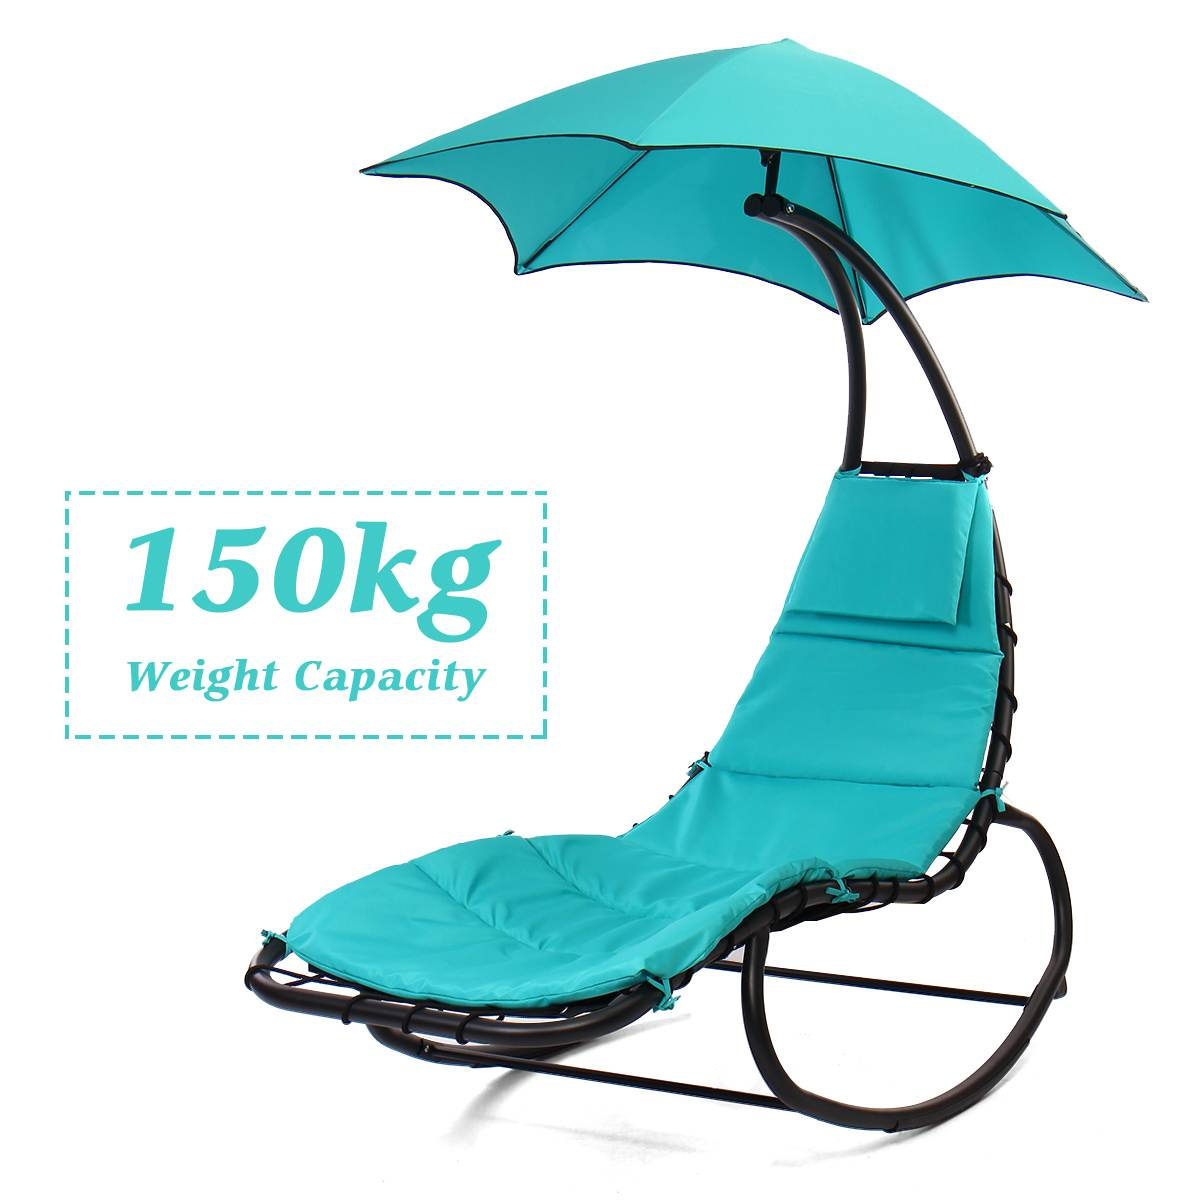 330lbs 150KG Load Hammock Chair Arc Stand Hanging Chaise Lounger Swing Chair Chaise Lounge Sun Loungers 66.9X35.4X72 Inch